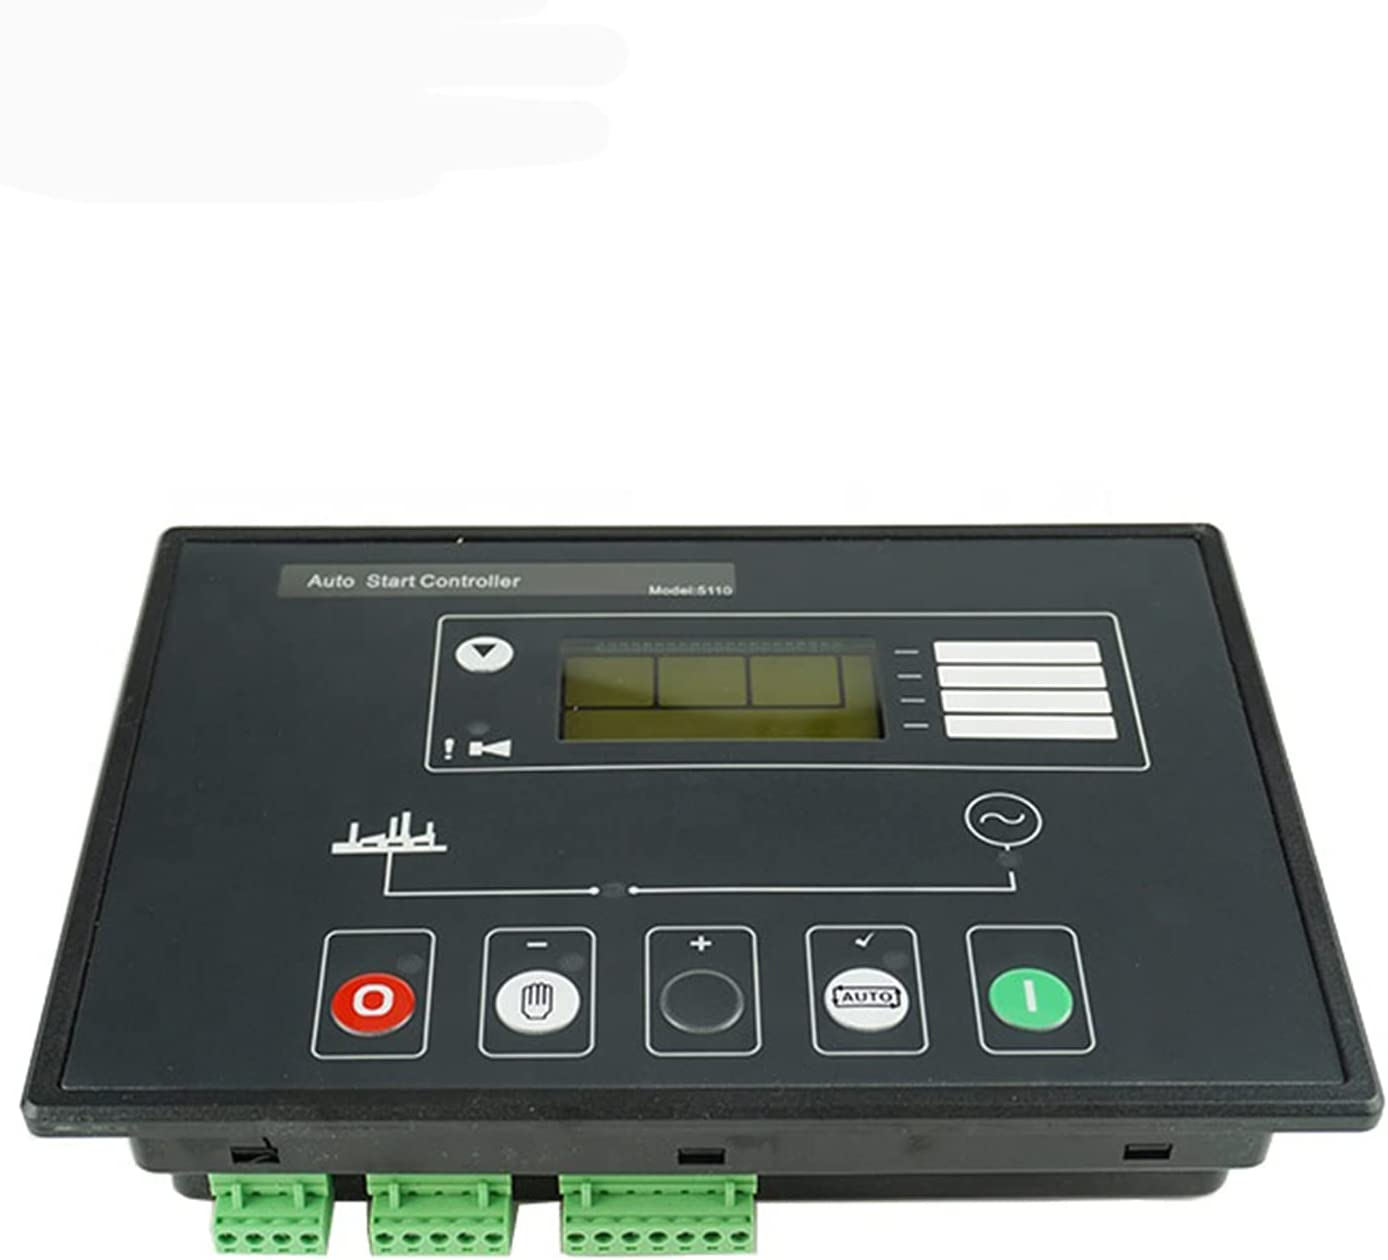 Wishbay Excellent Controller DSE5110 Control In stock Module With Display 5110 LCD